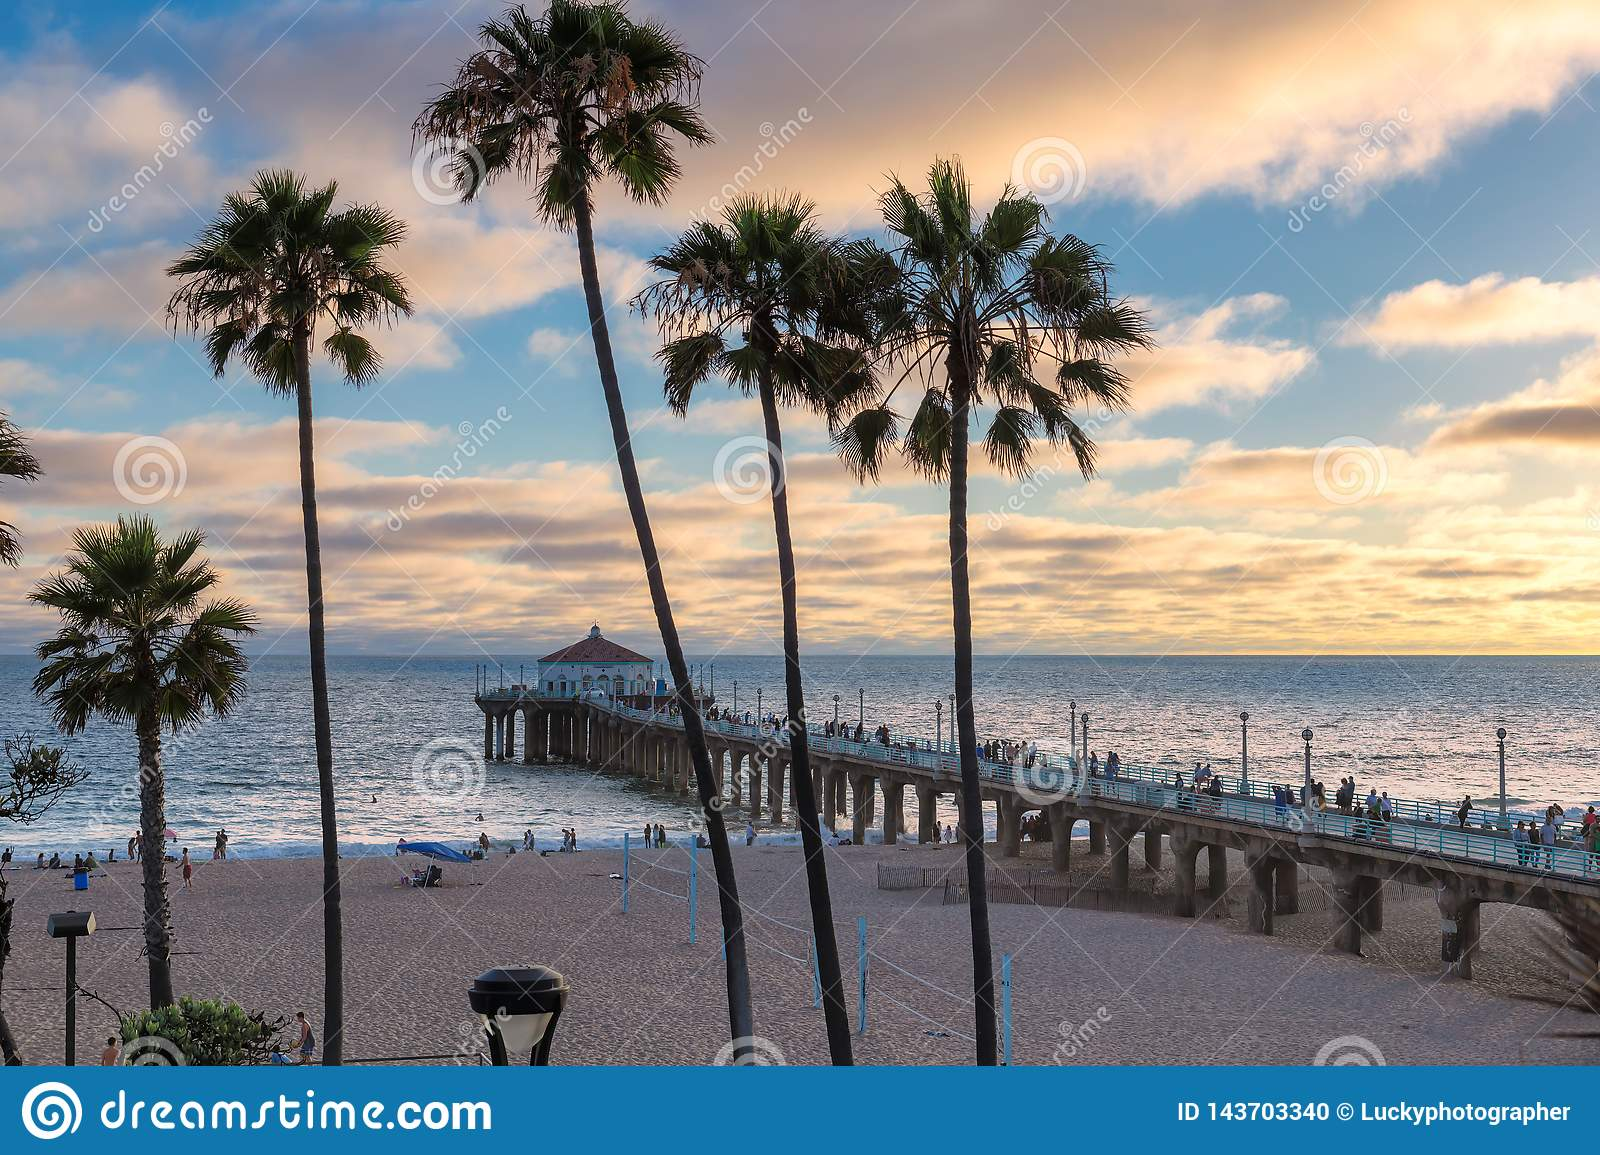 Sunset At Manhattan Beach In Southern California Los Angeles Stock Photo Image Of Shore Evening 143703340